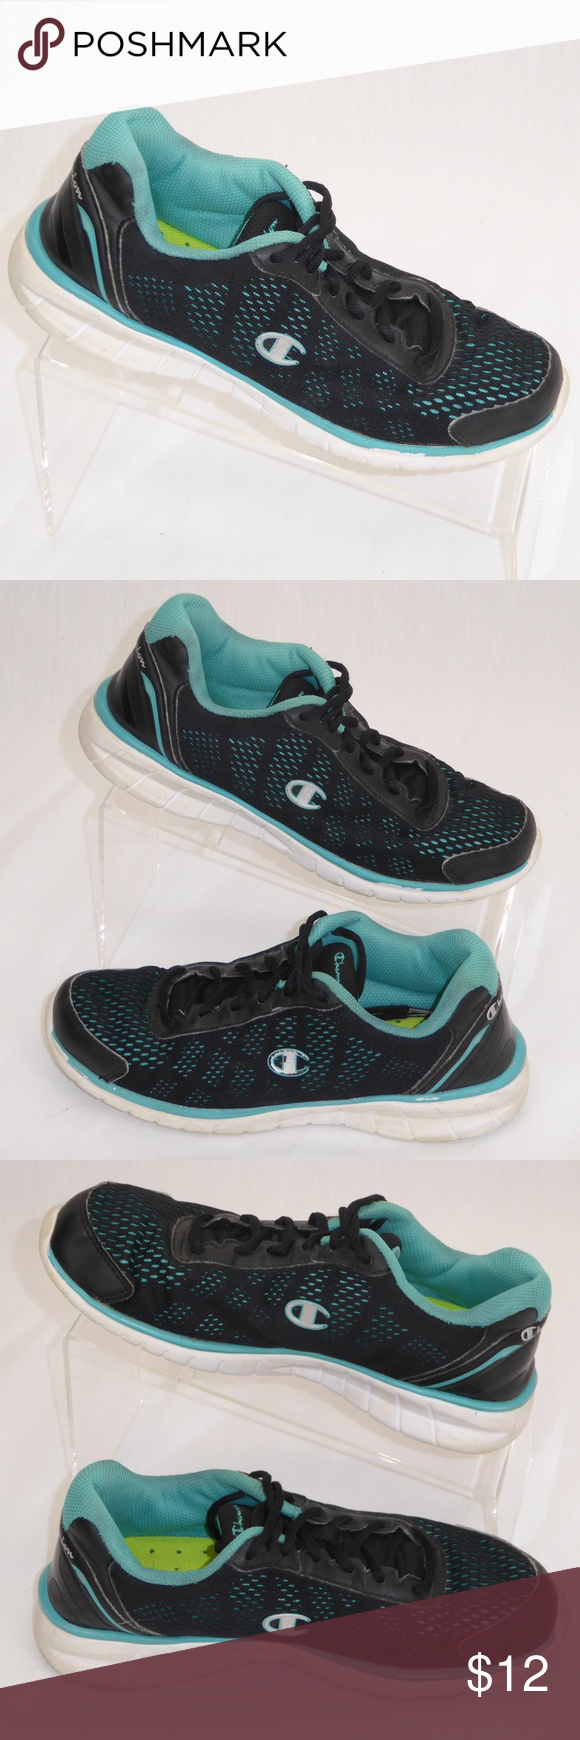 b25e4bcf0197 Champion Running Shoes Size 7  010 Brand  Champion Style  Running Shoes  Color